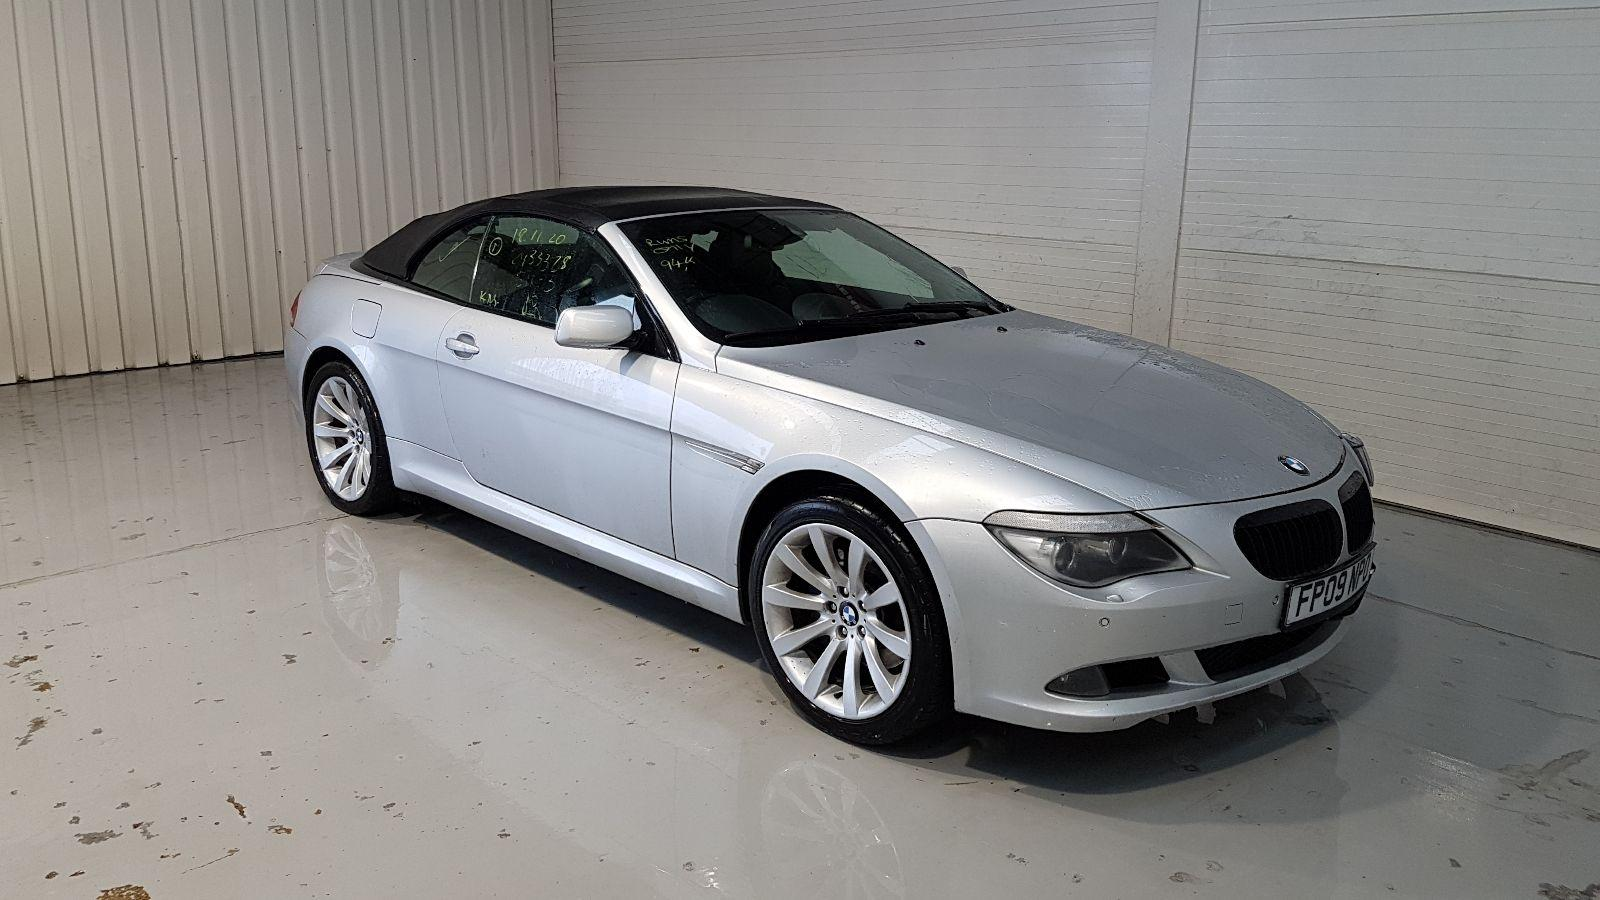 Image for a Bmw 6 Series 2009 2 Door Unknown